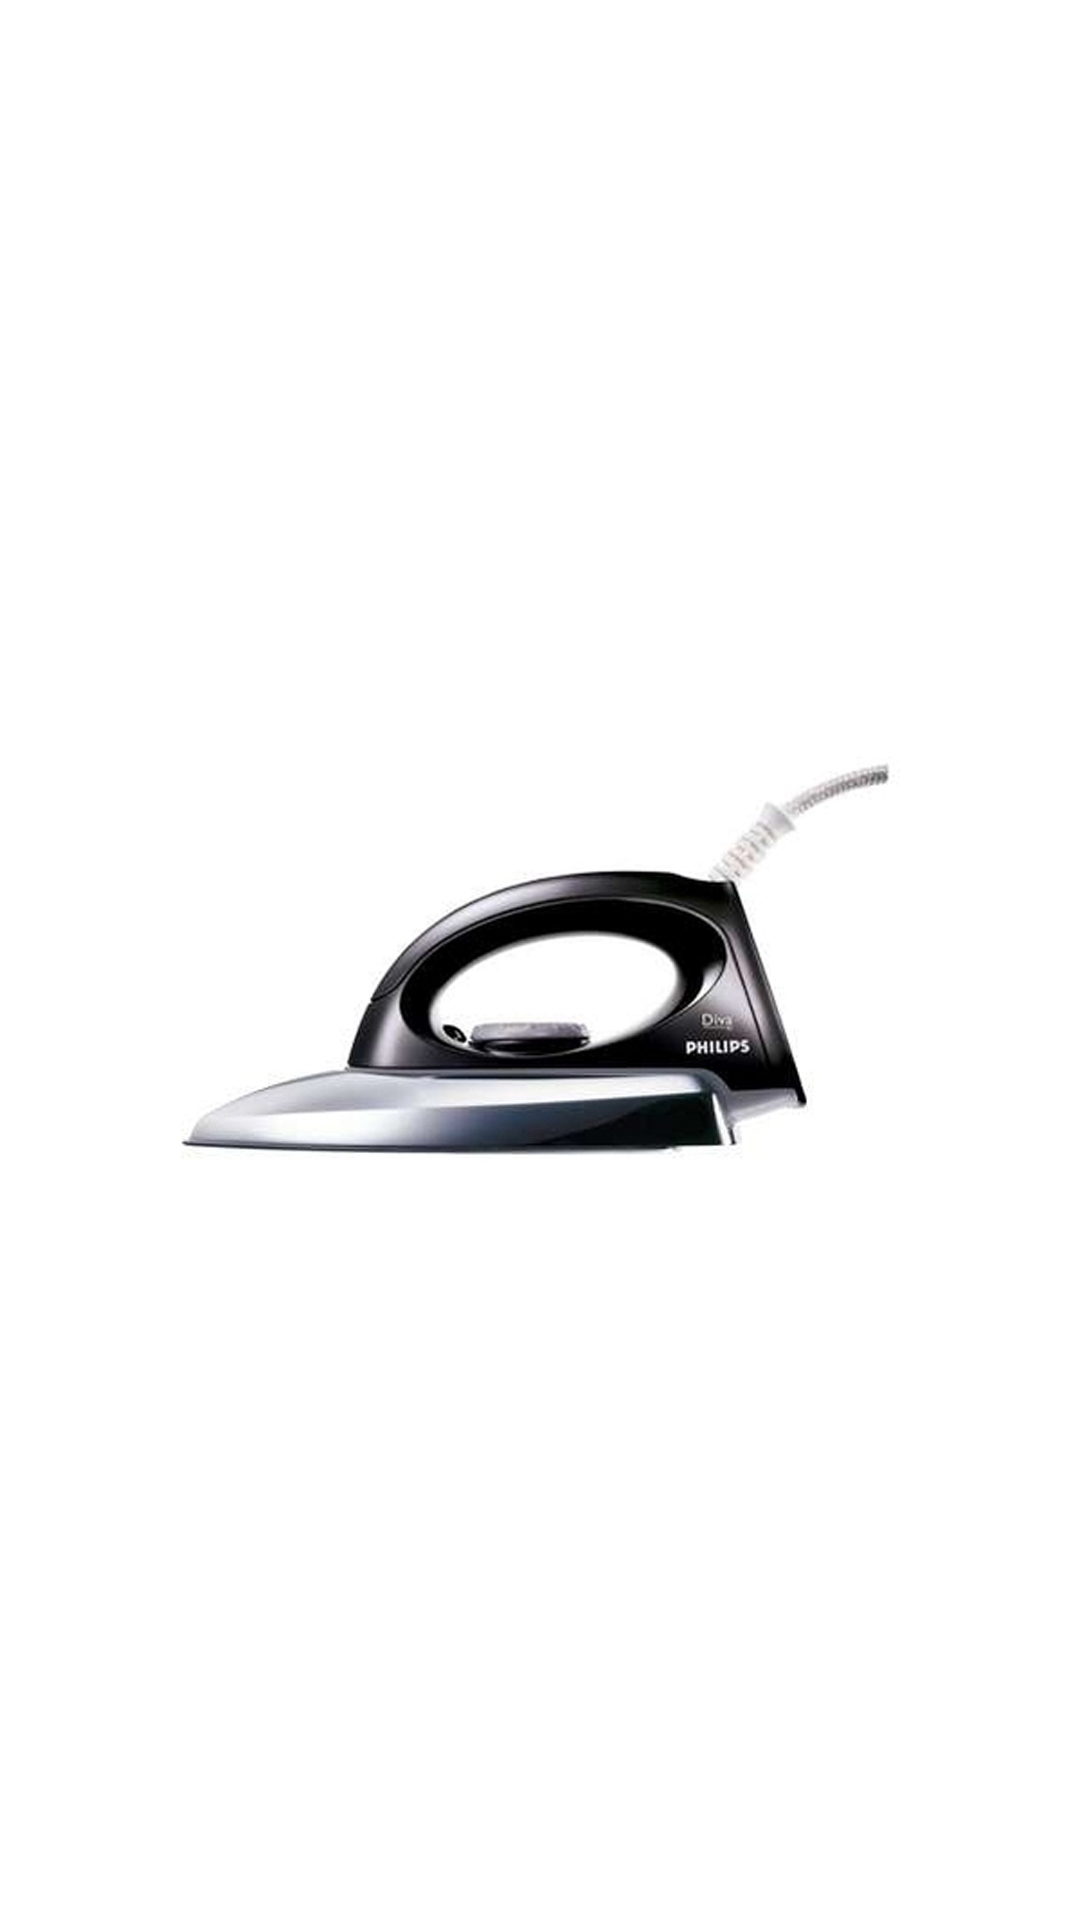 Buy Philips Diva GC83 750 W Dry Iron (Black) Online at Low